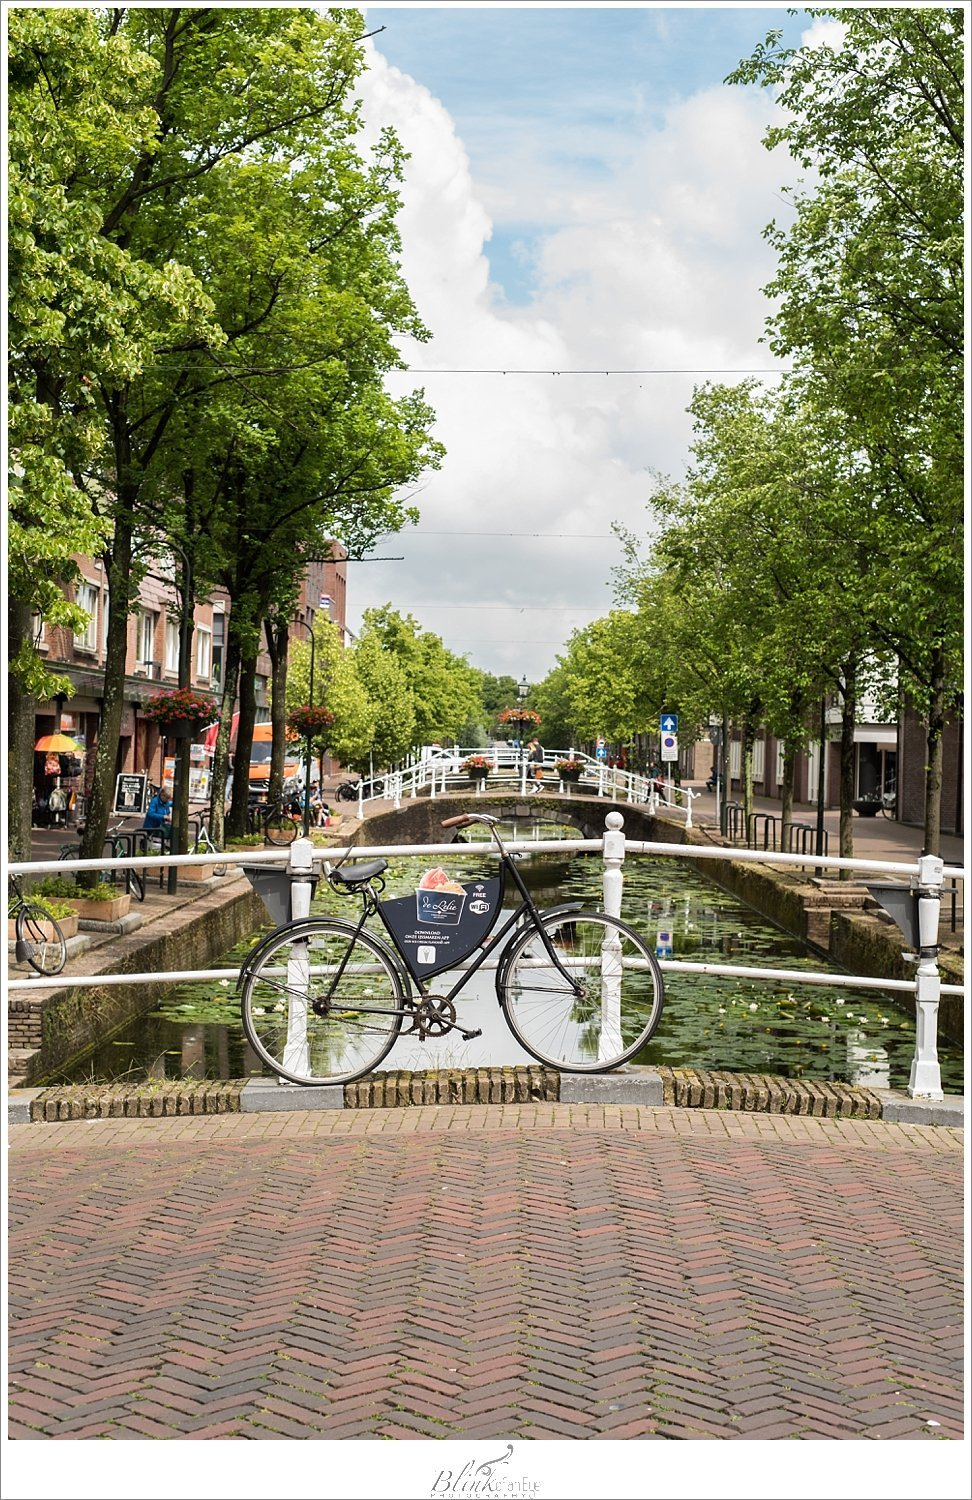 The bike is iconic in The Netherlands.